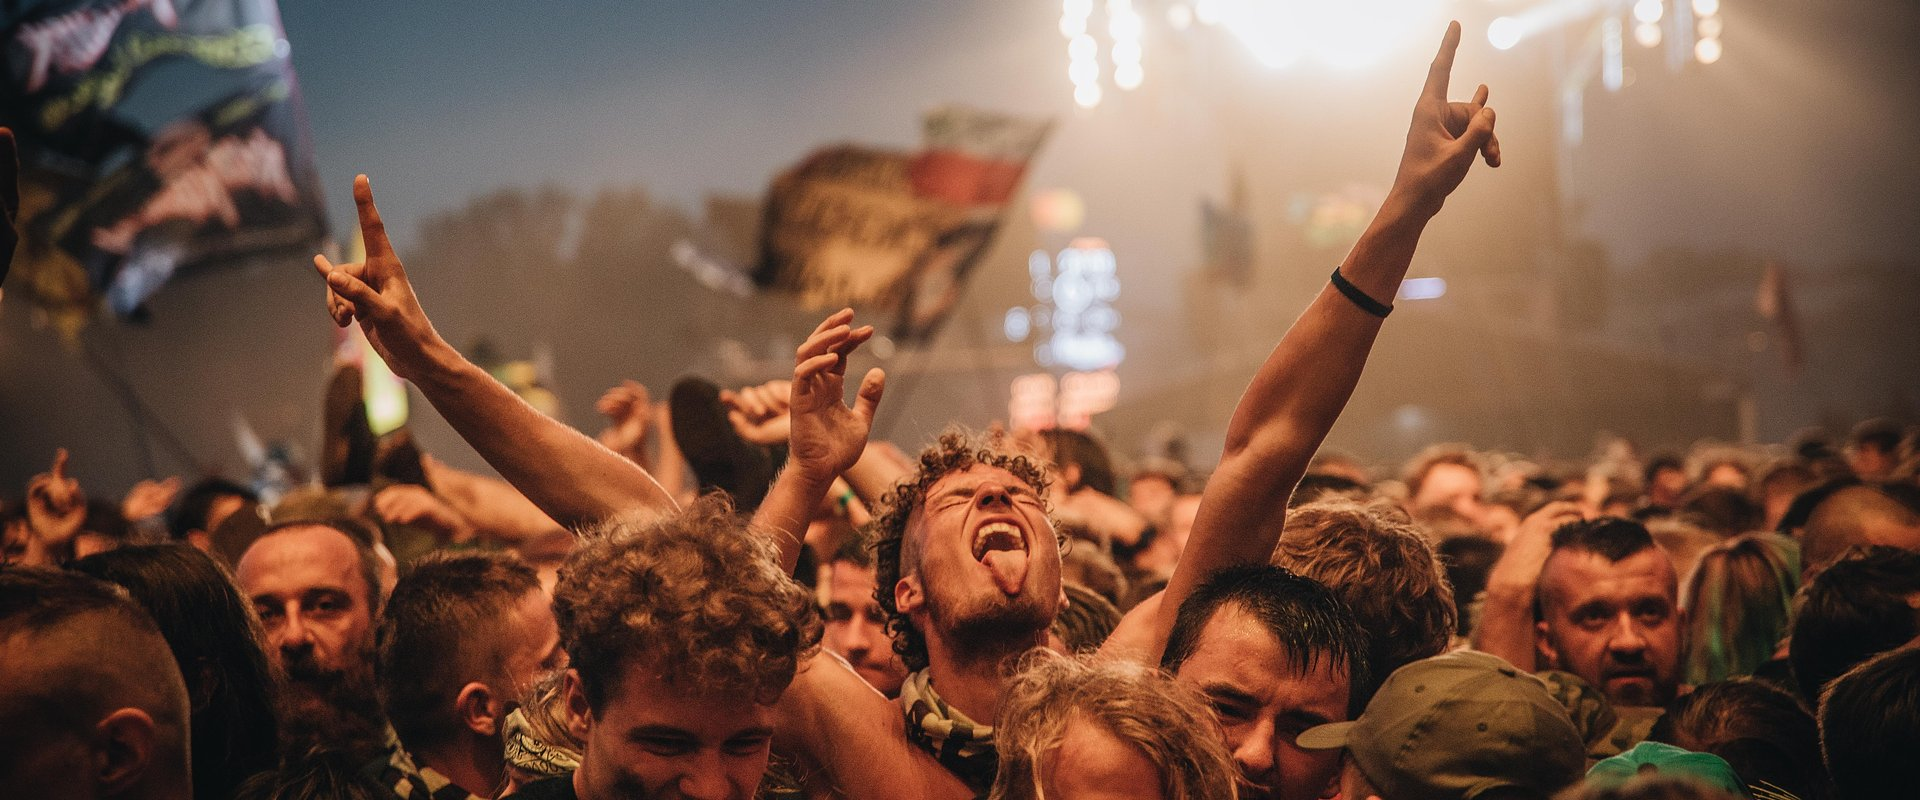 Pol'and'Rock Festival 2021 has a new home!